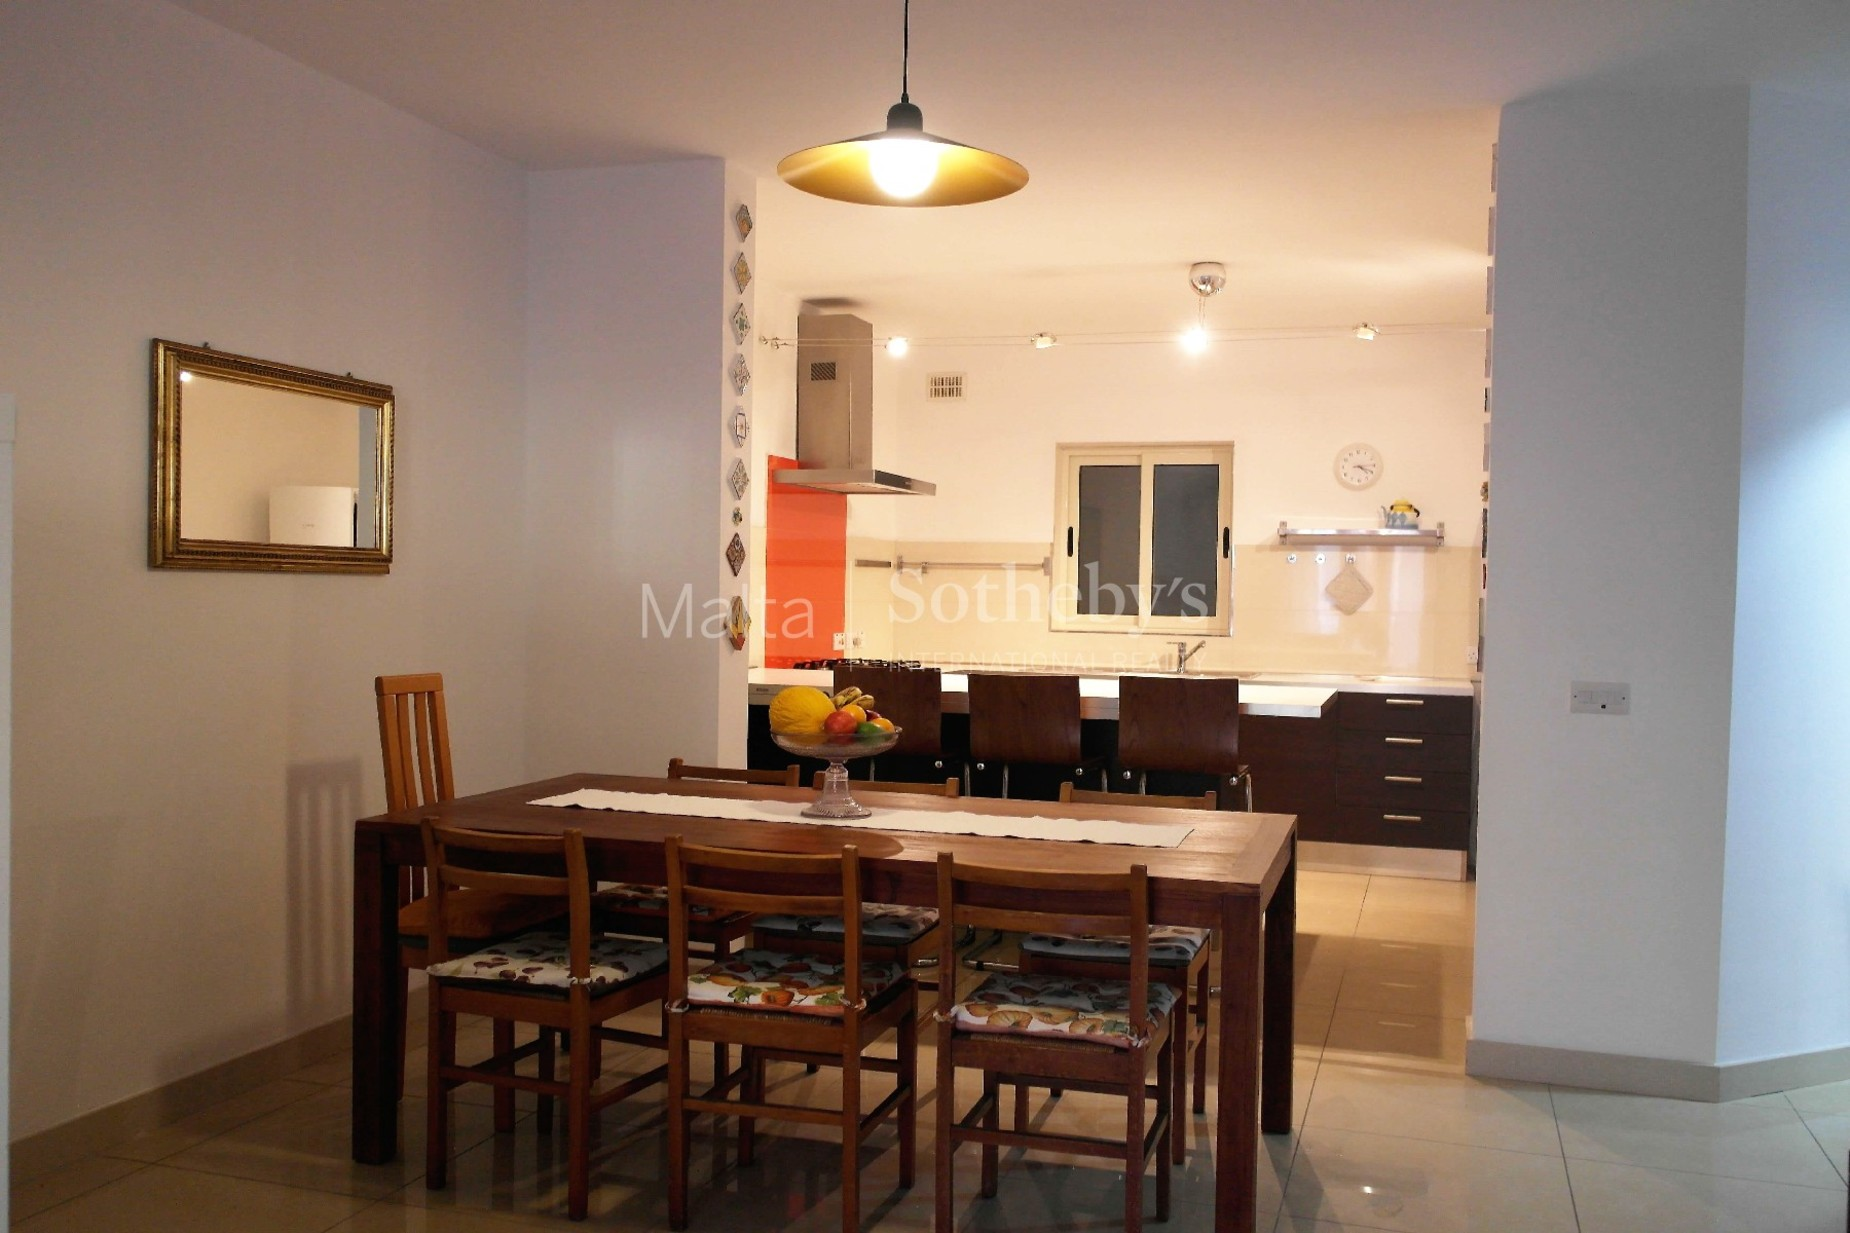 3 bed Apartment For Rent in Gzira, Gzira - thumb 5